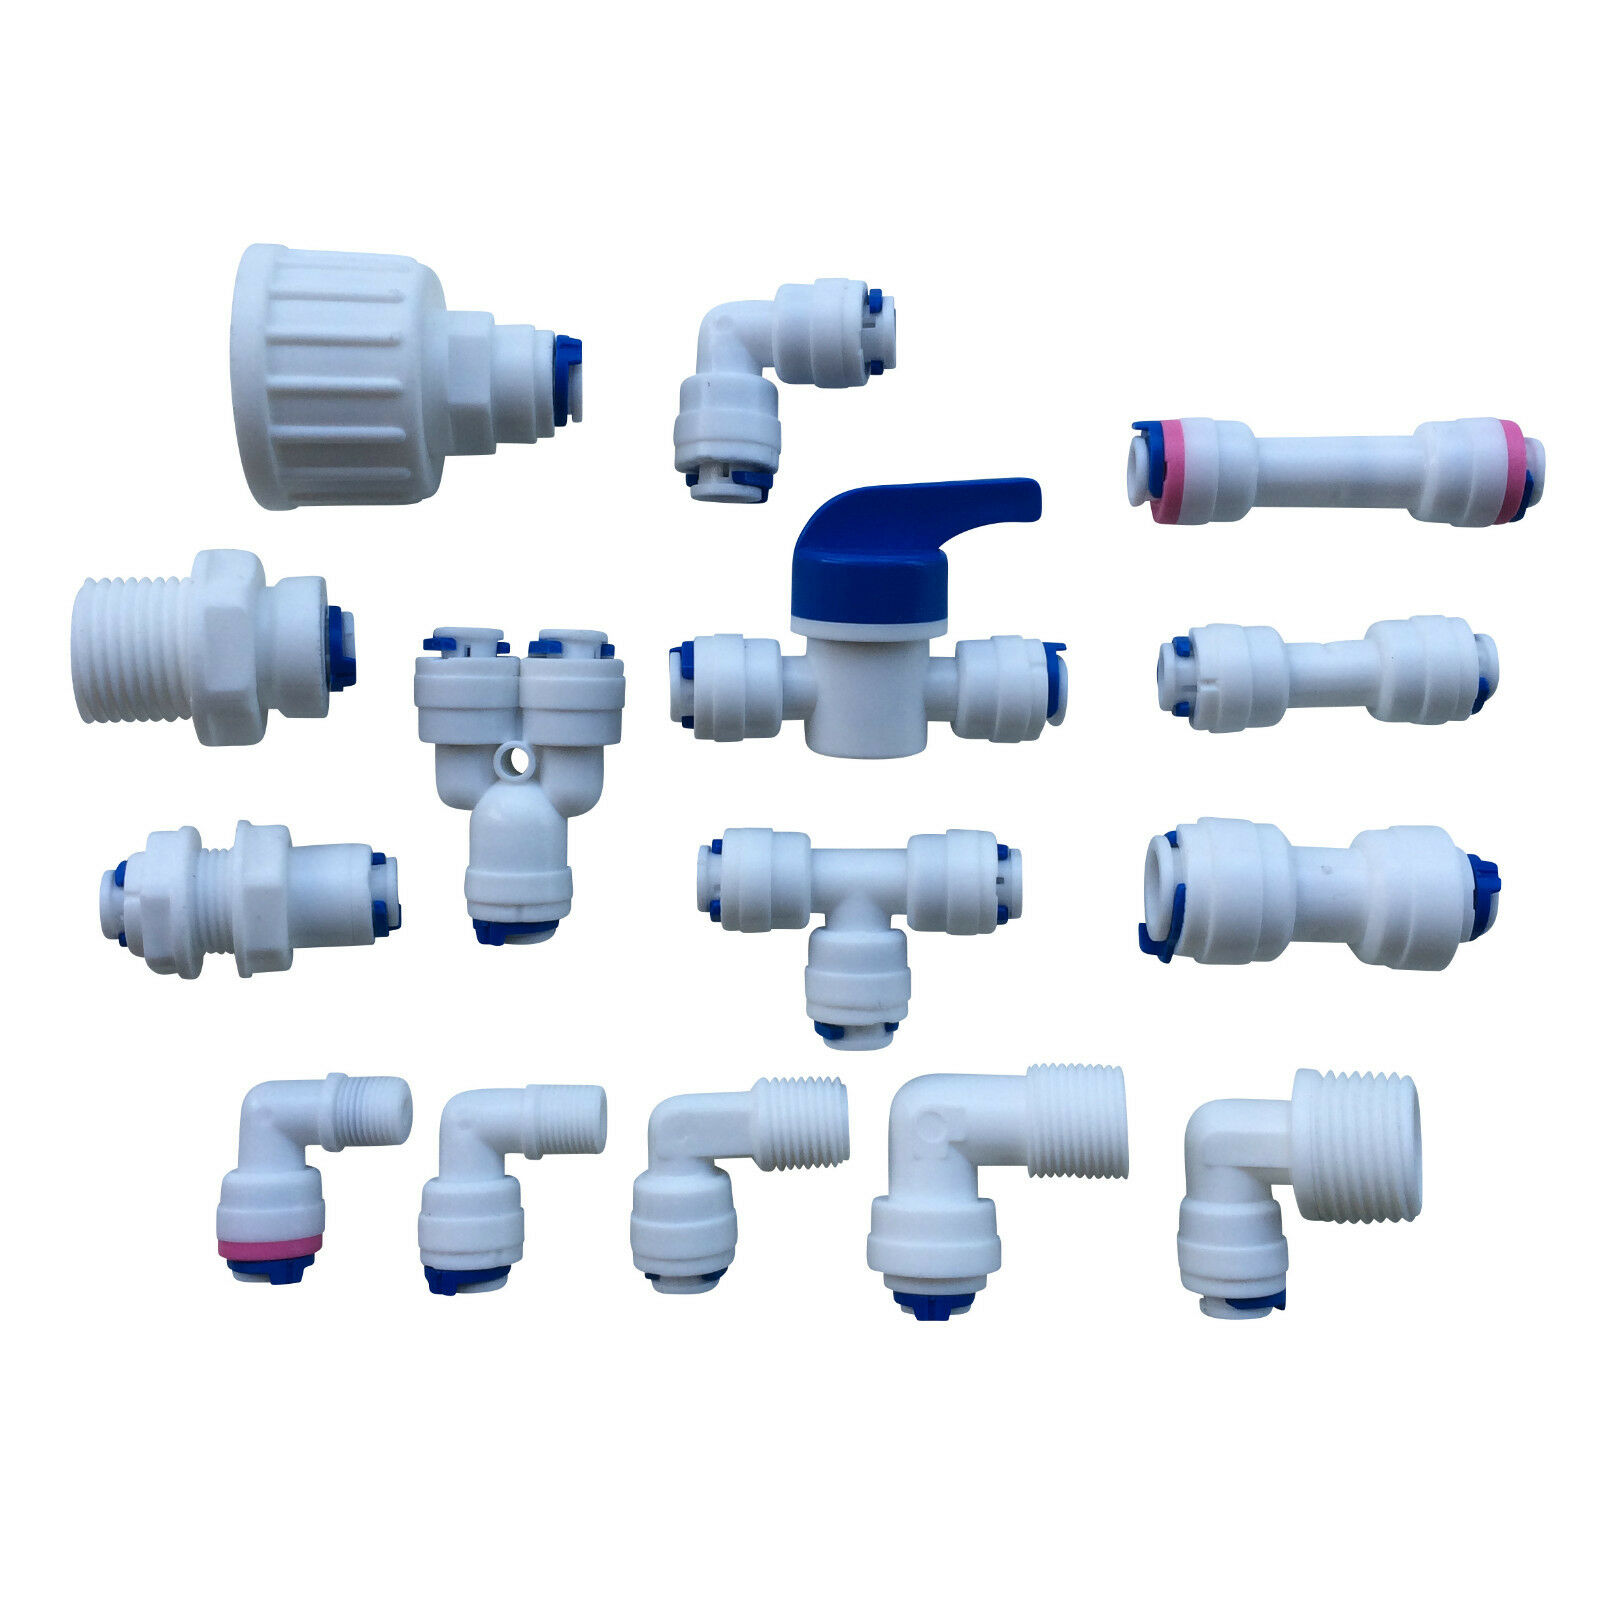 1 4 Quot Push Fit Pipe Fittings For American Fridge And Ro